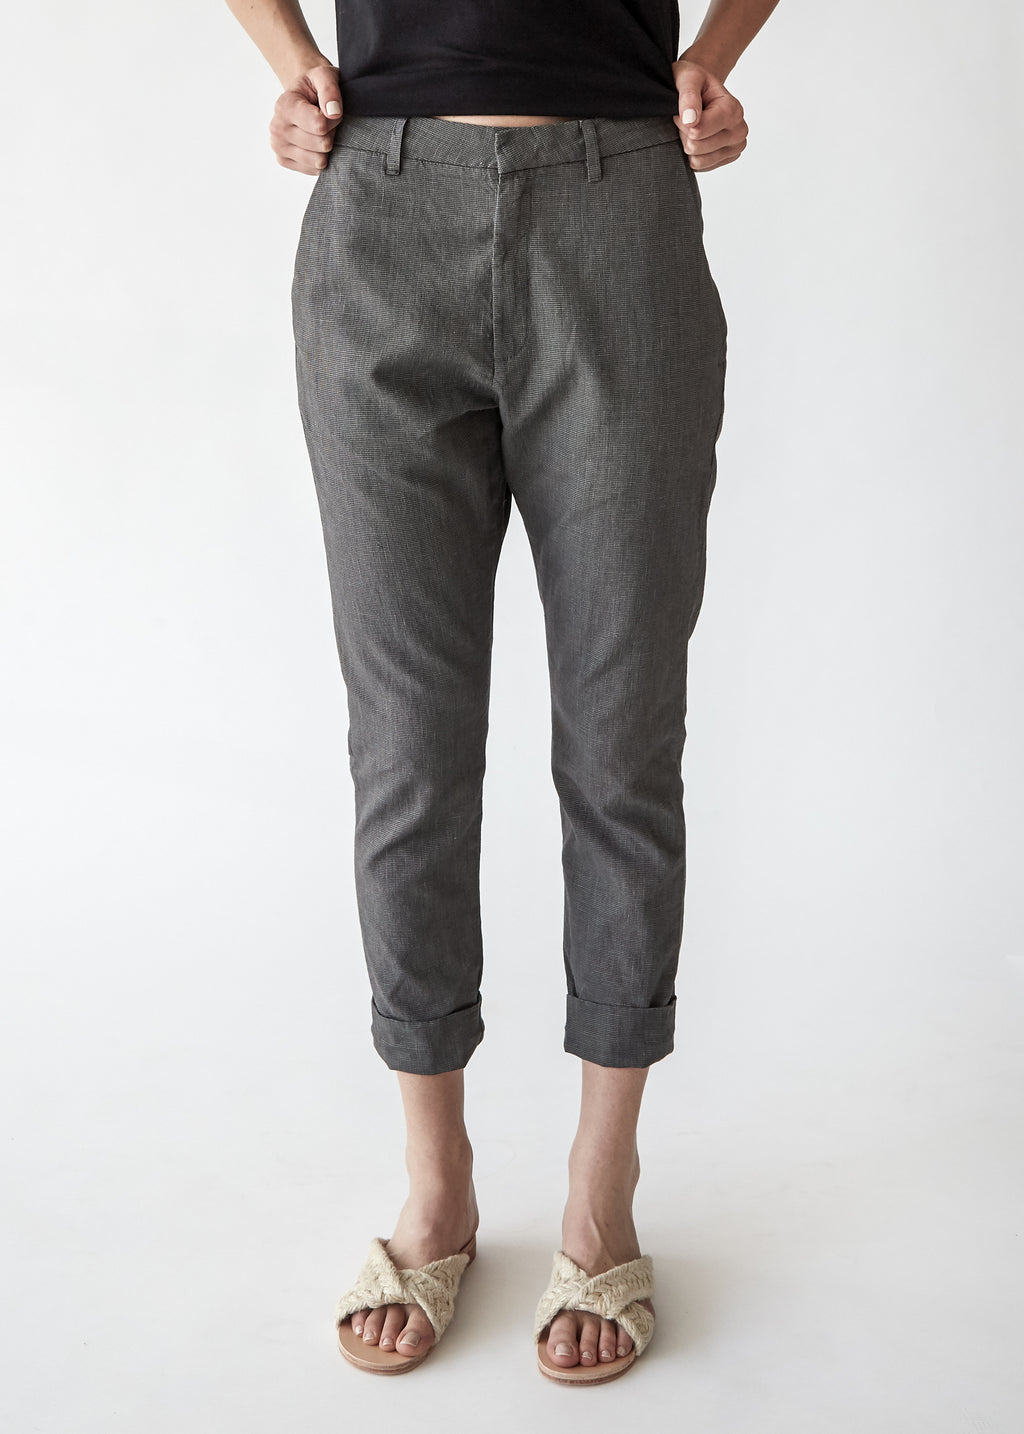 News Trouser in Grey Dogtooth